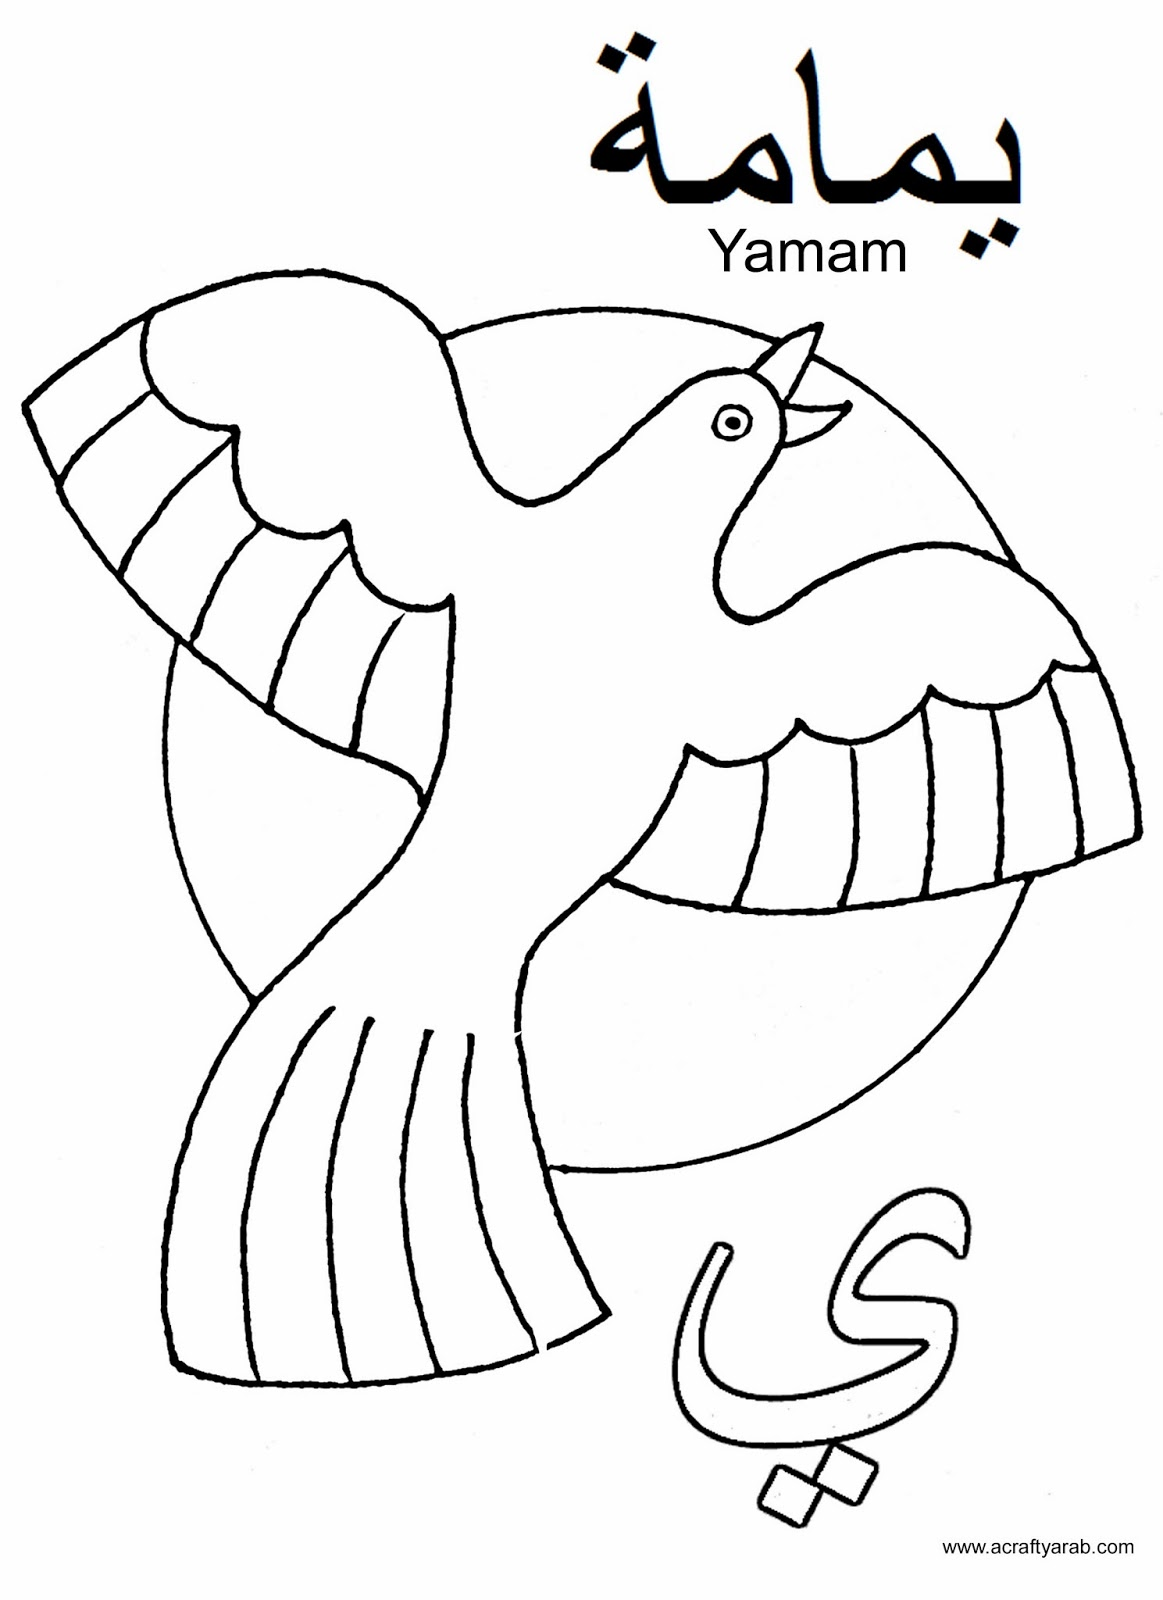 a crafty arab arabic alphabet coloring pages ya is for yamam. Black Bedroom Furniture Sets. Home Design Ideas